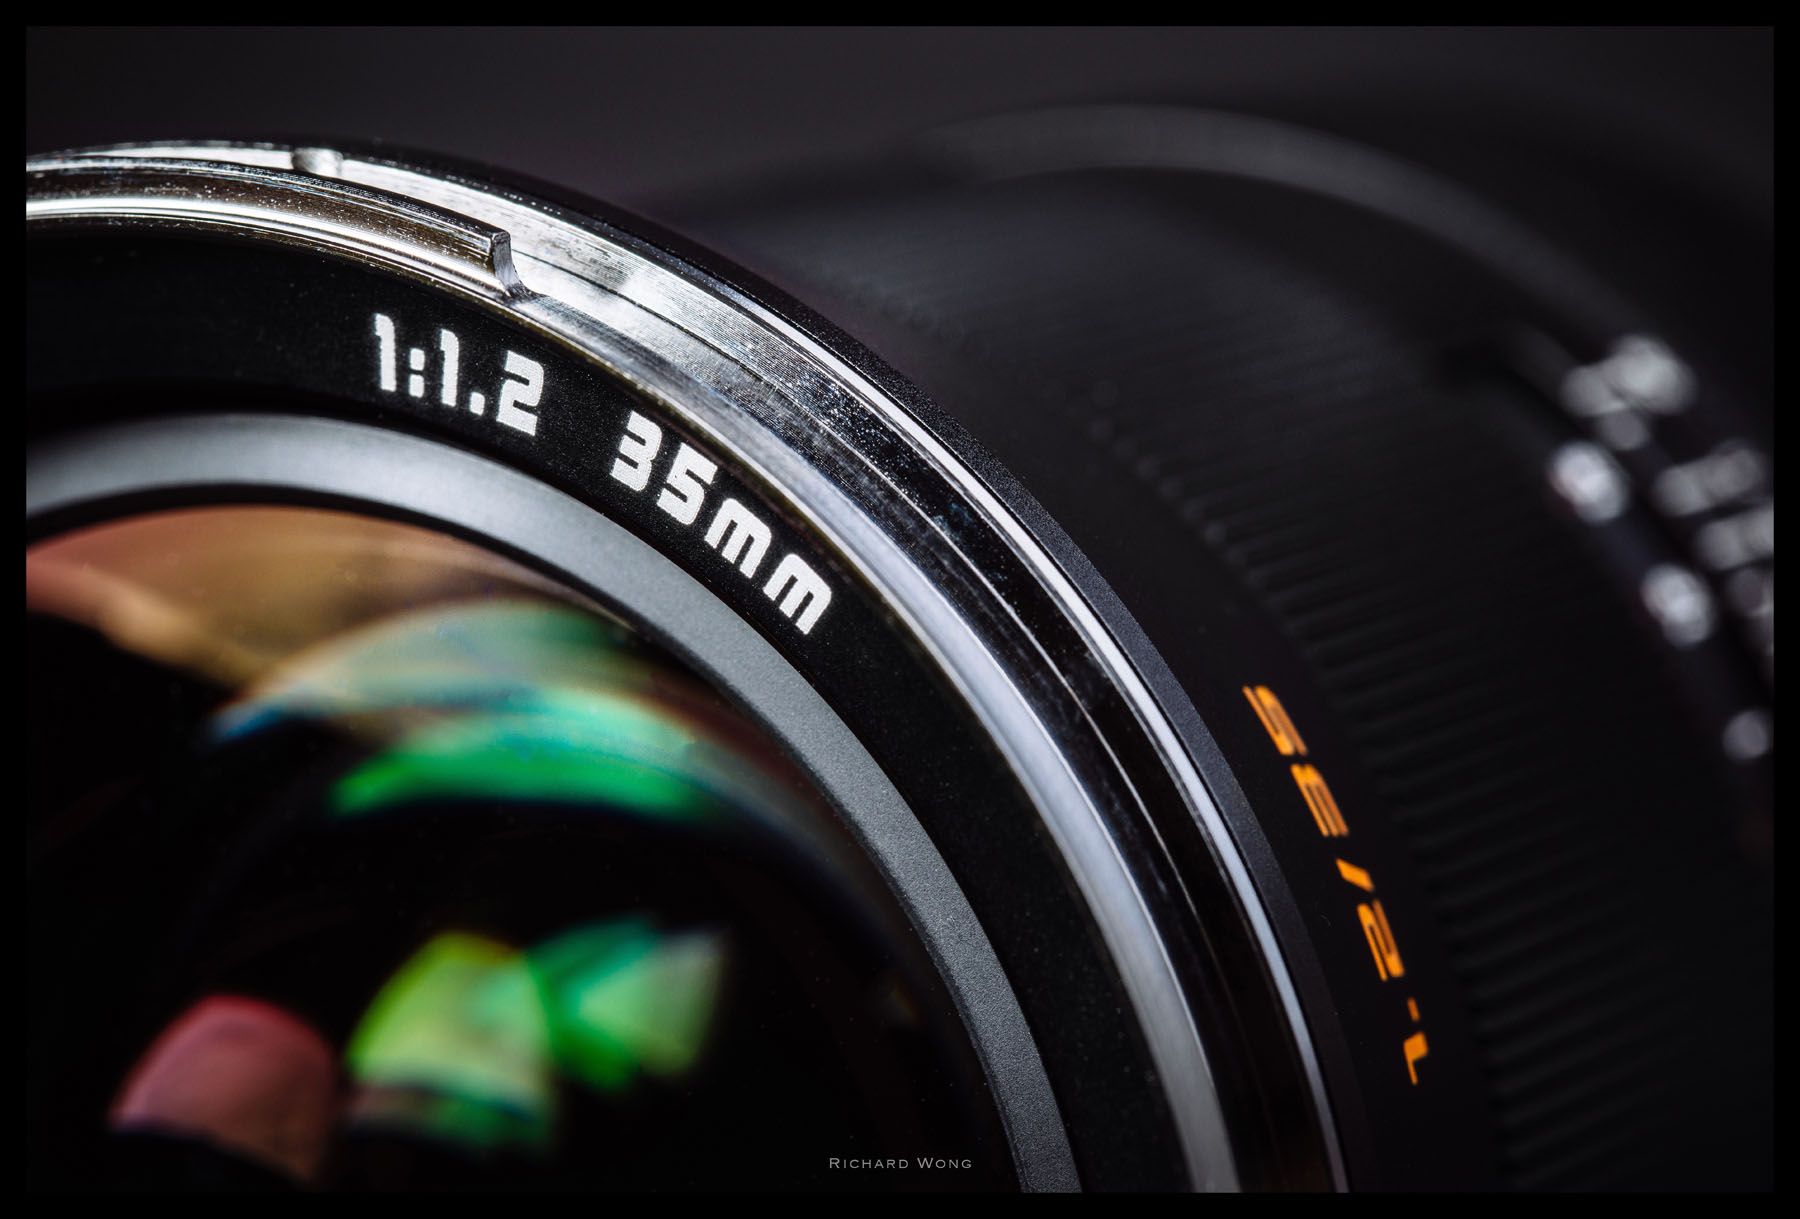 lens-35mm-shootout-review-05